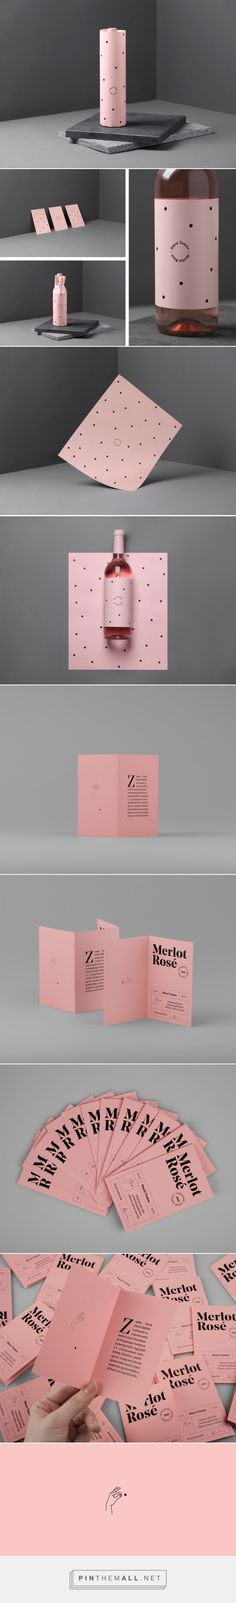 Dúzsi Tamás Merlot Rosé - Packaging of the World - Creative Package Design Gallery - http://www.packagingoftheworld.com/2016/10/duzsi-tamas-merlot-rose.html